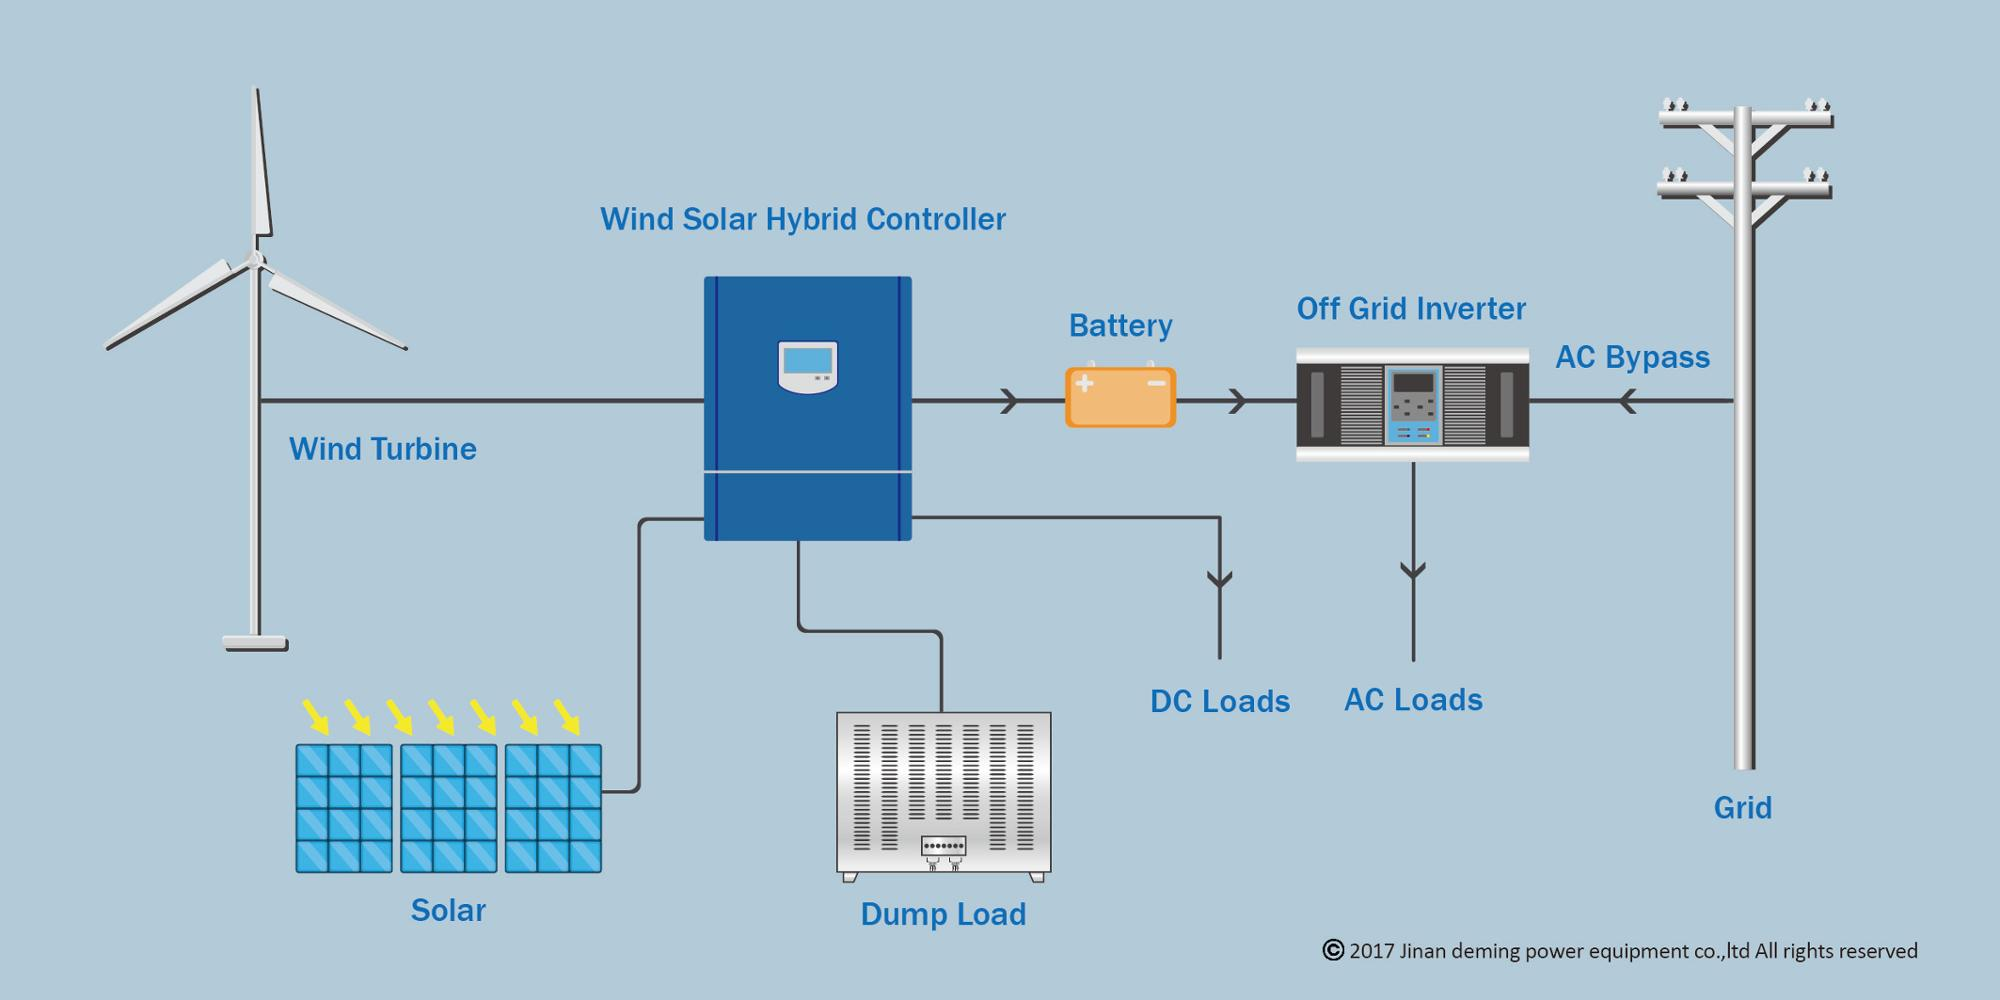 3kw Wind Controller Solar Hybrid Charge For Turbine Dumpload System